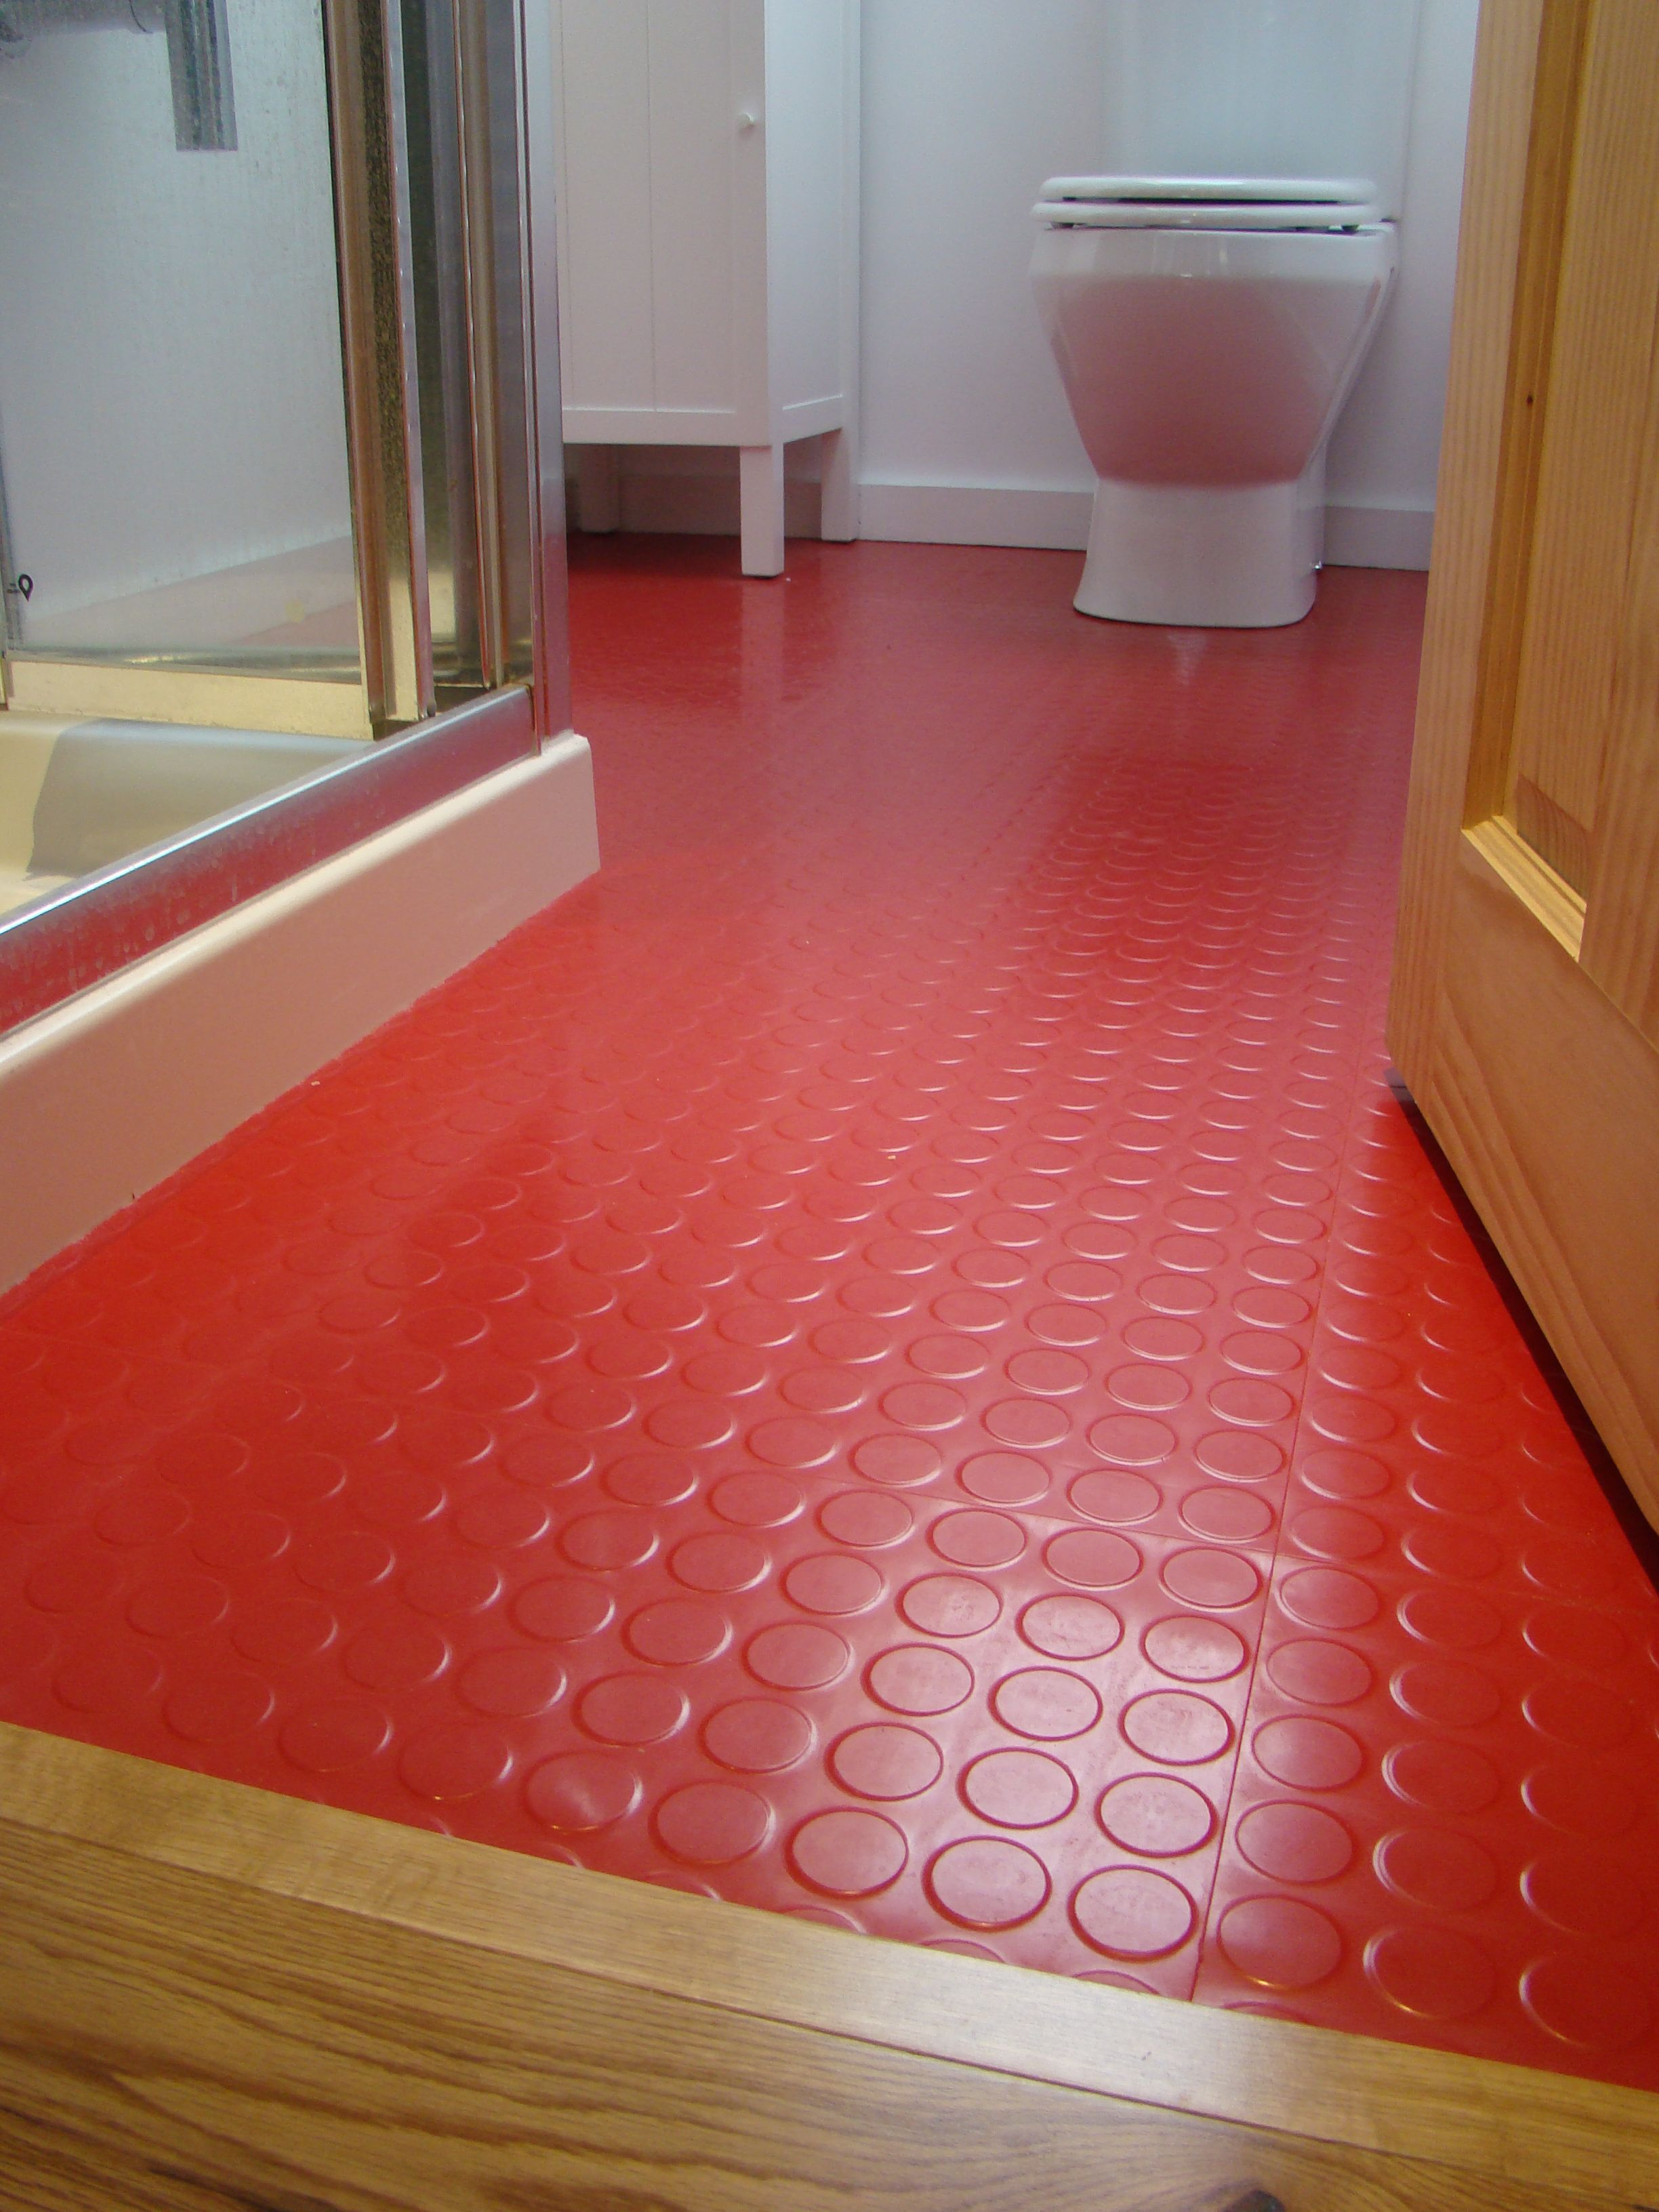 Red Rubber Flooring From Polyflor In Bathroom More Rubberflooring